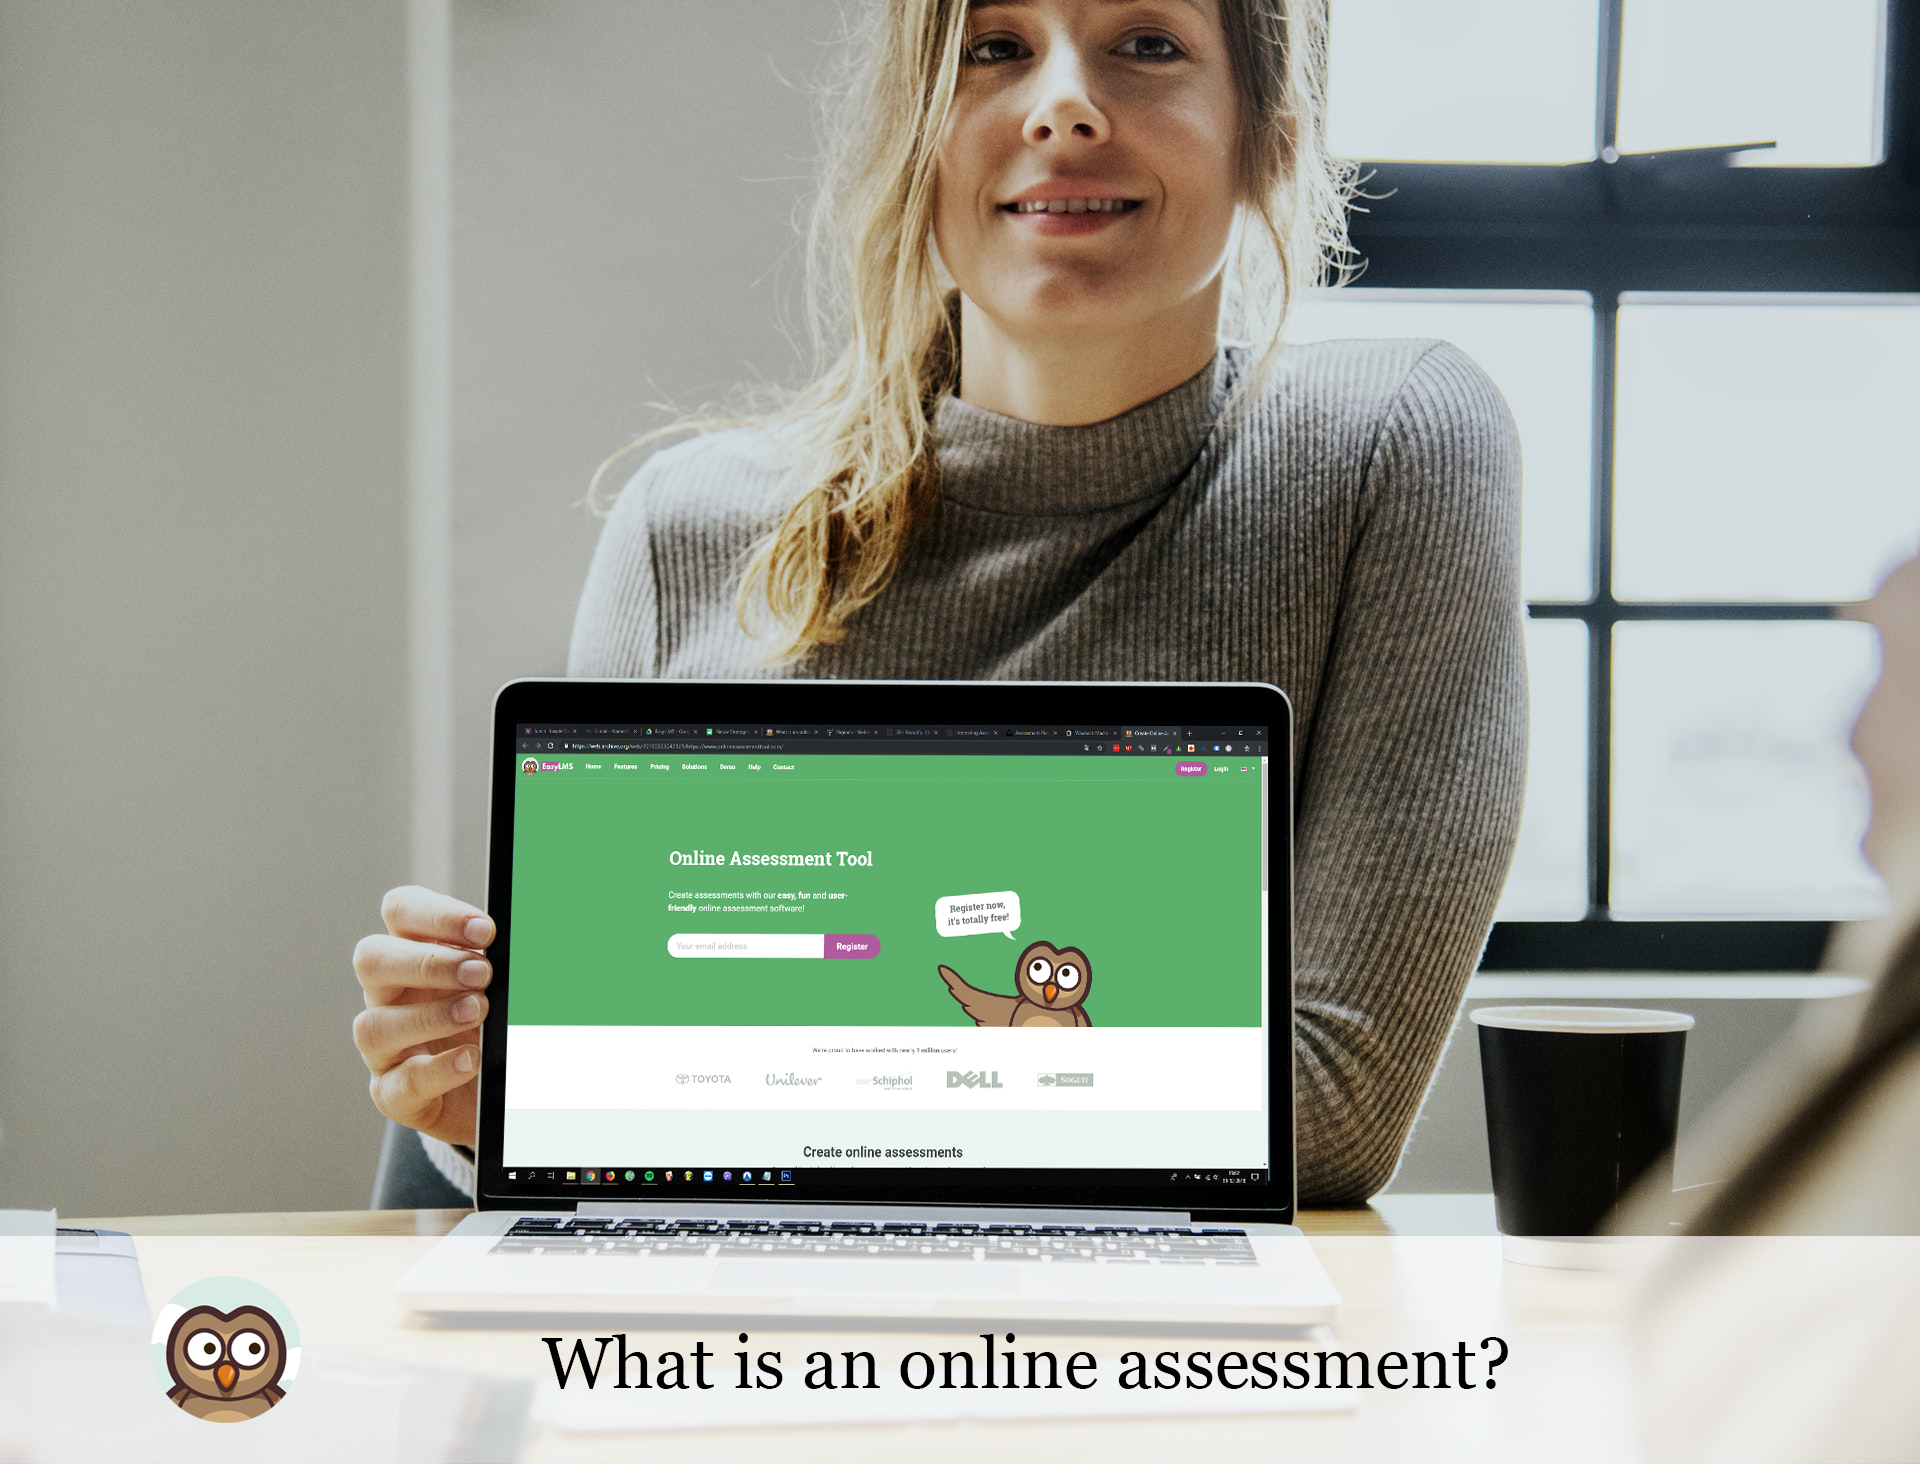 What is an online assessment?